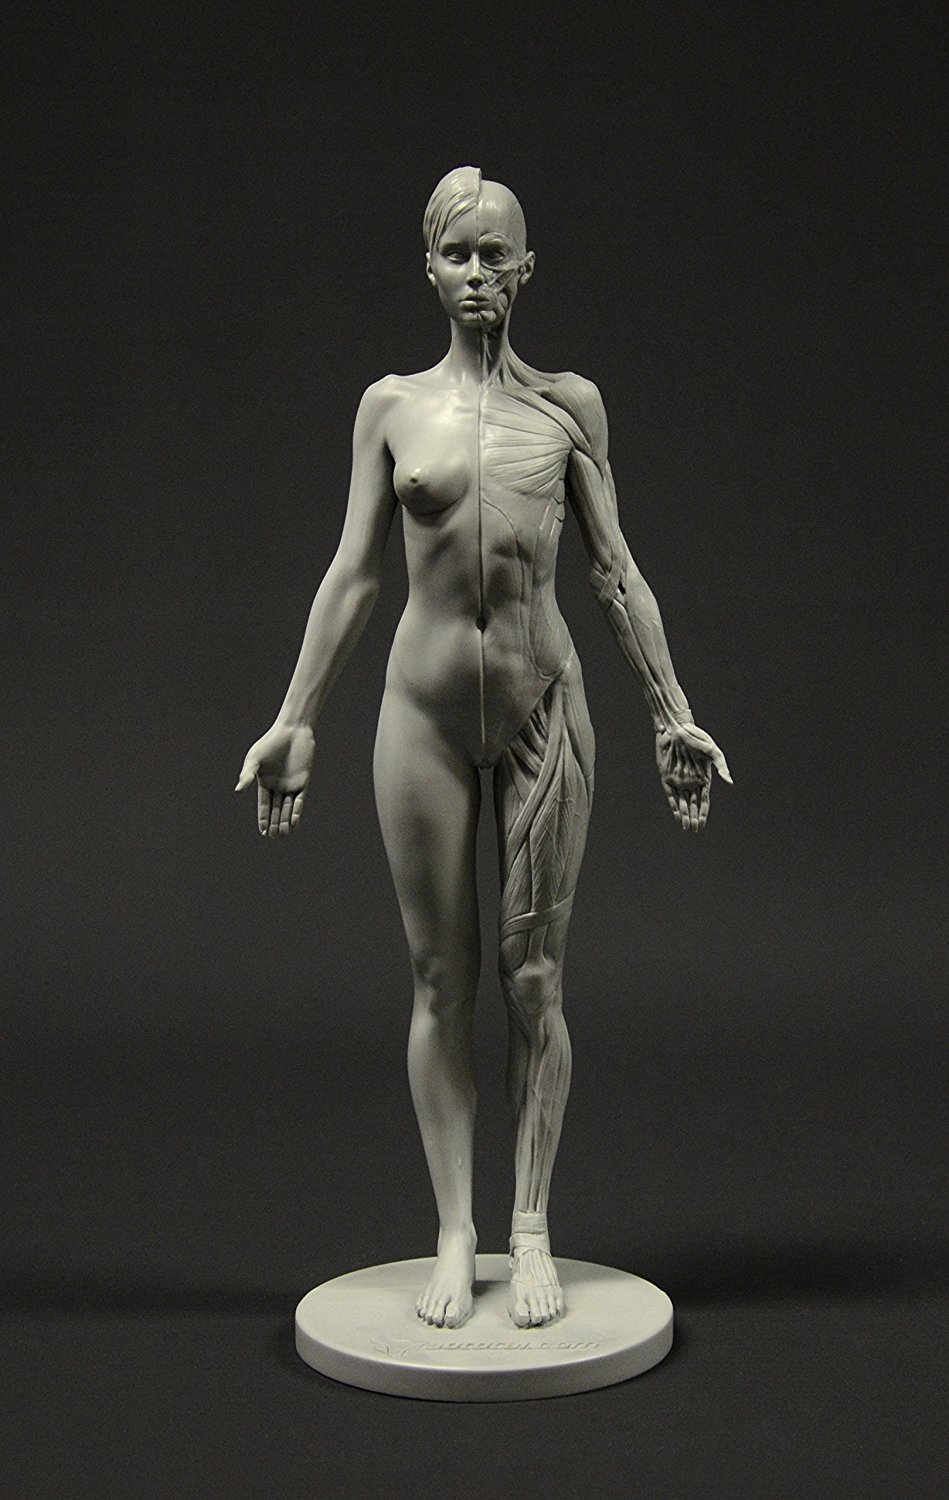 Cheap Anatomical Figure Find Anatomical Figure Deals On Line At